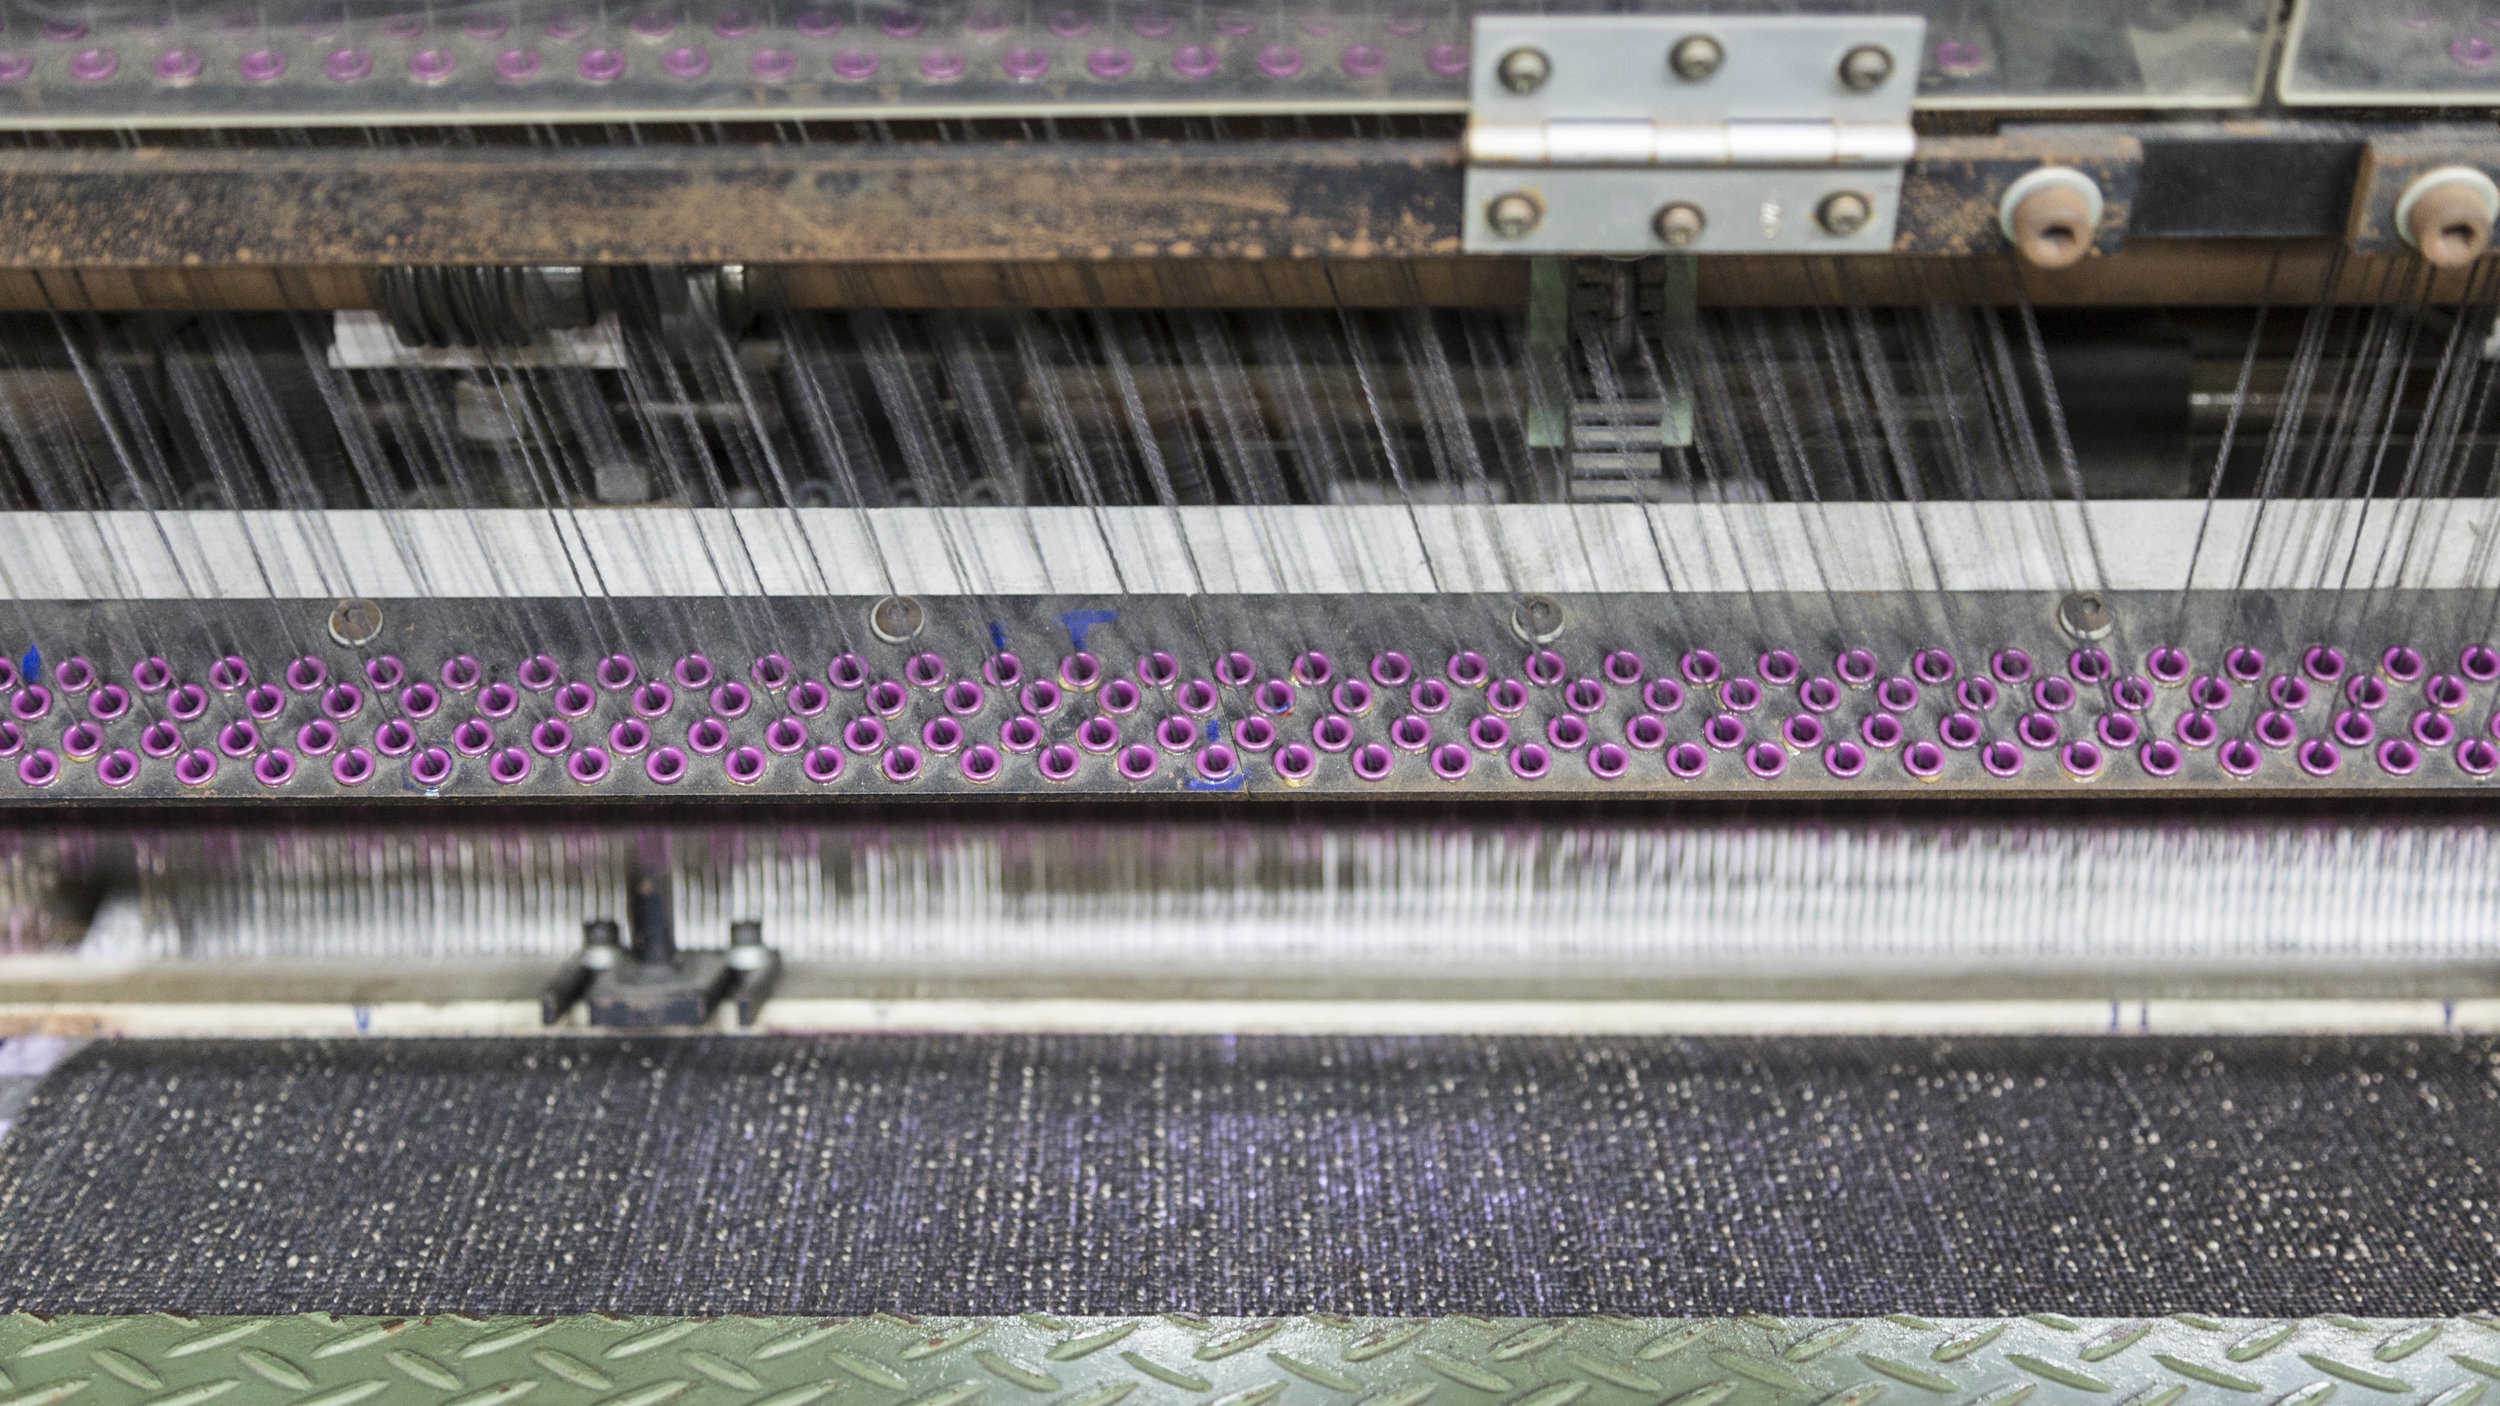 Weaving & Tufting - We are the largest Axminster carpet weaver in South East Asia with over 36 looms. We also produce Woven Wilton, Hand Tufted, Machine Tufted,Carpet Tiles, and Needle Punched Carpets.